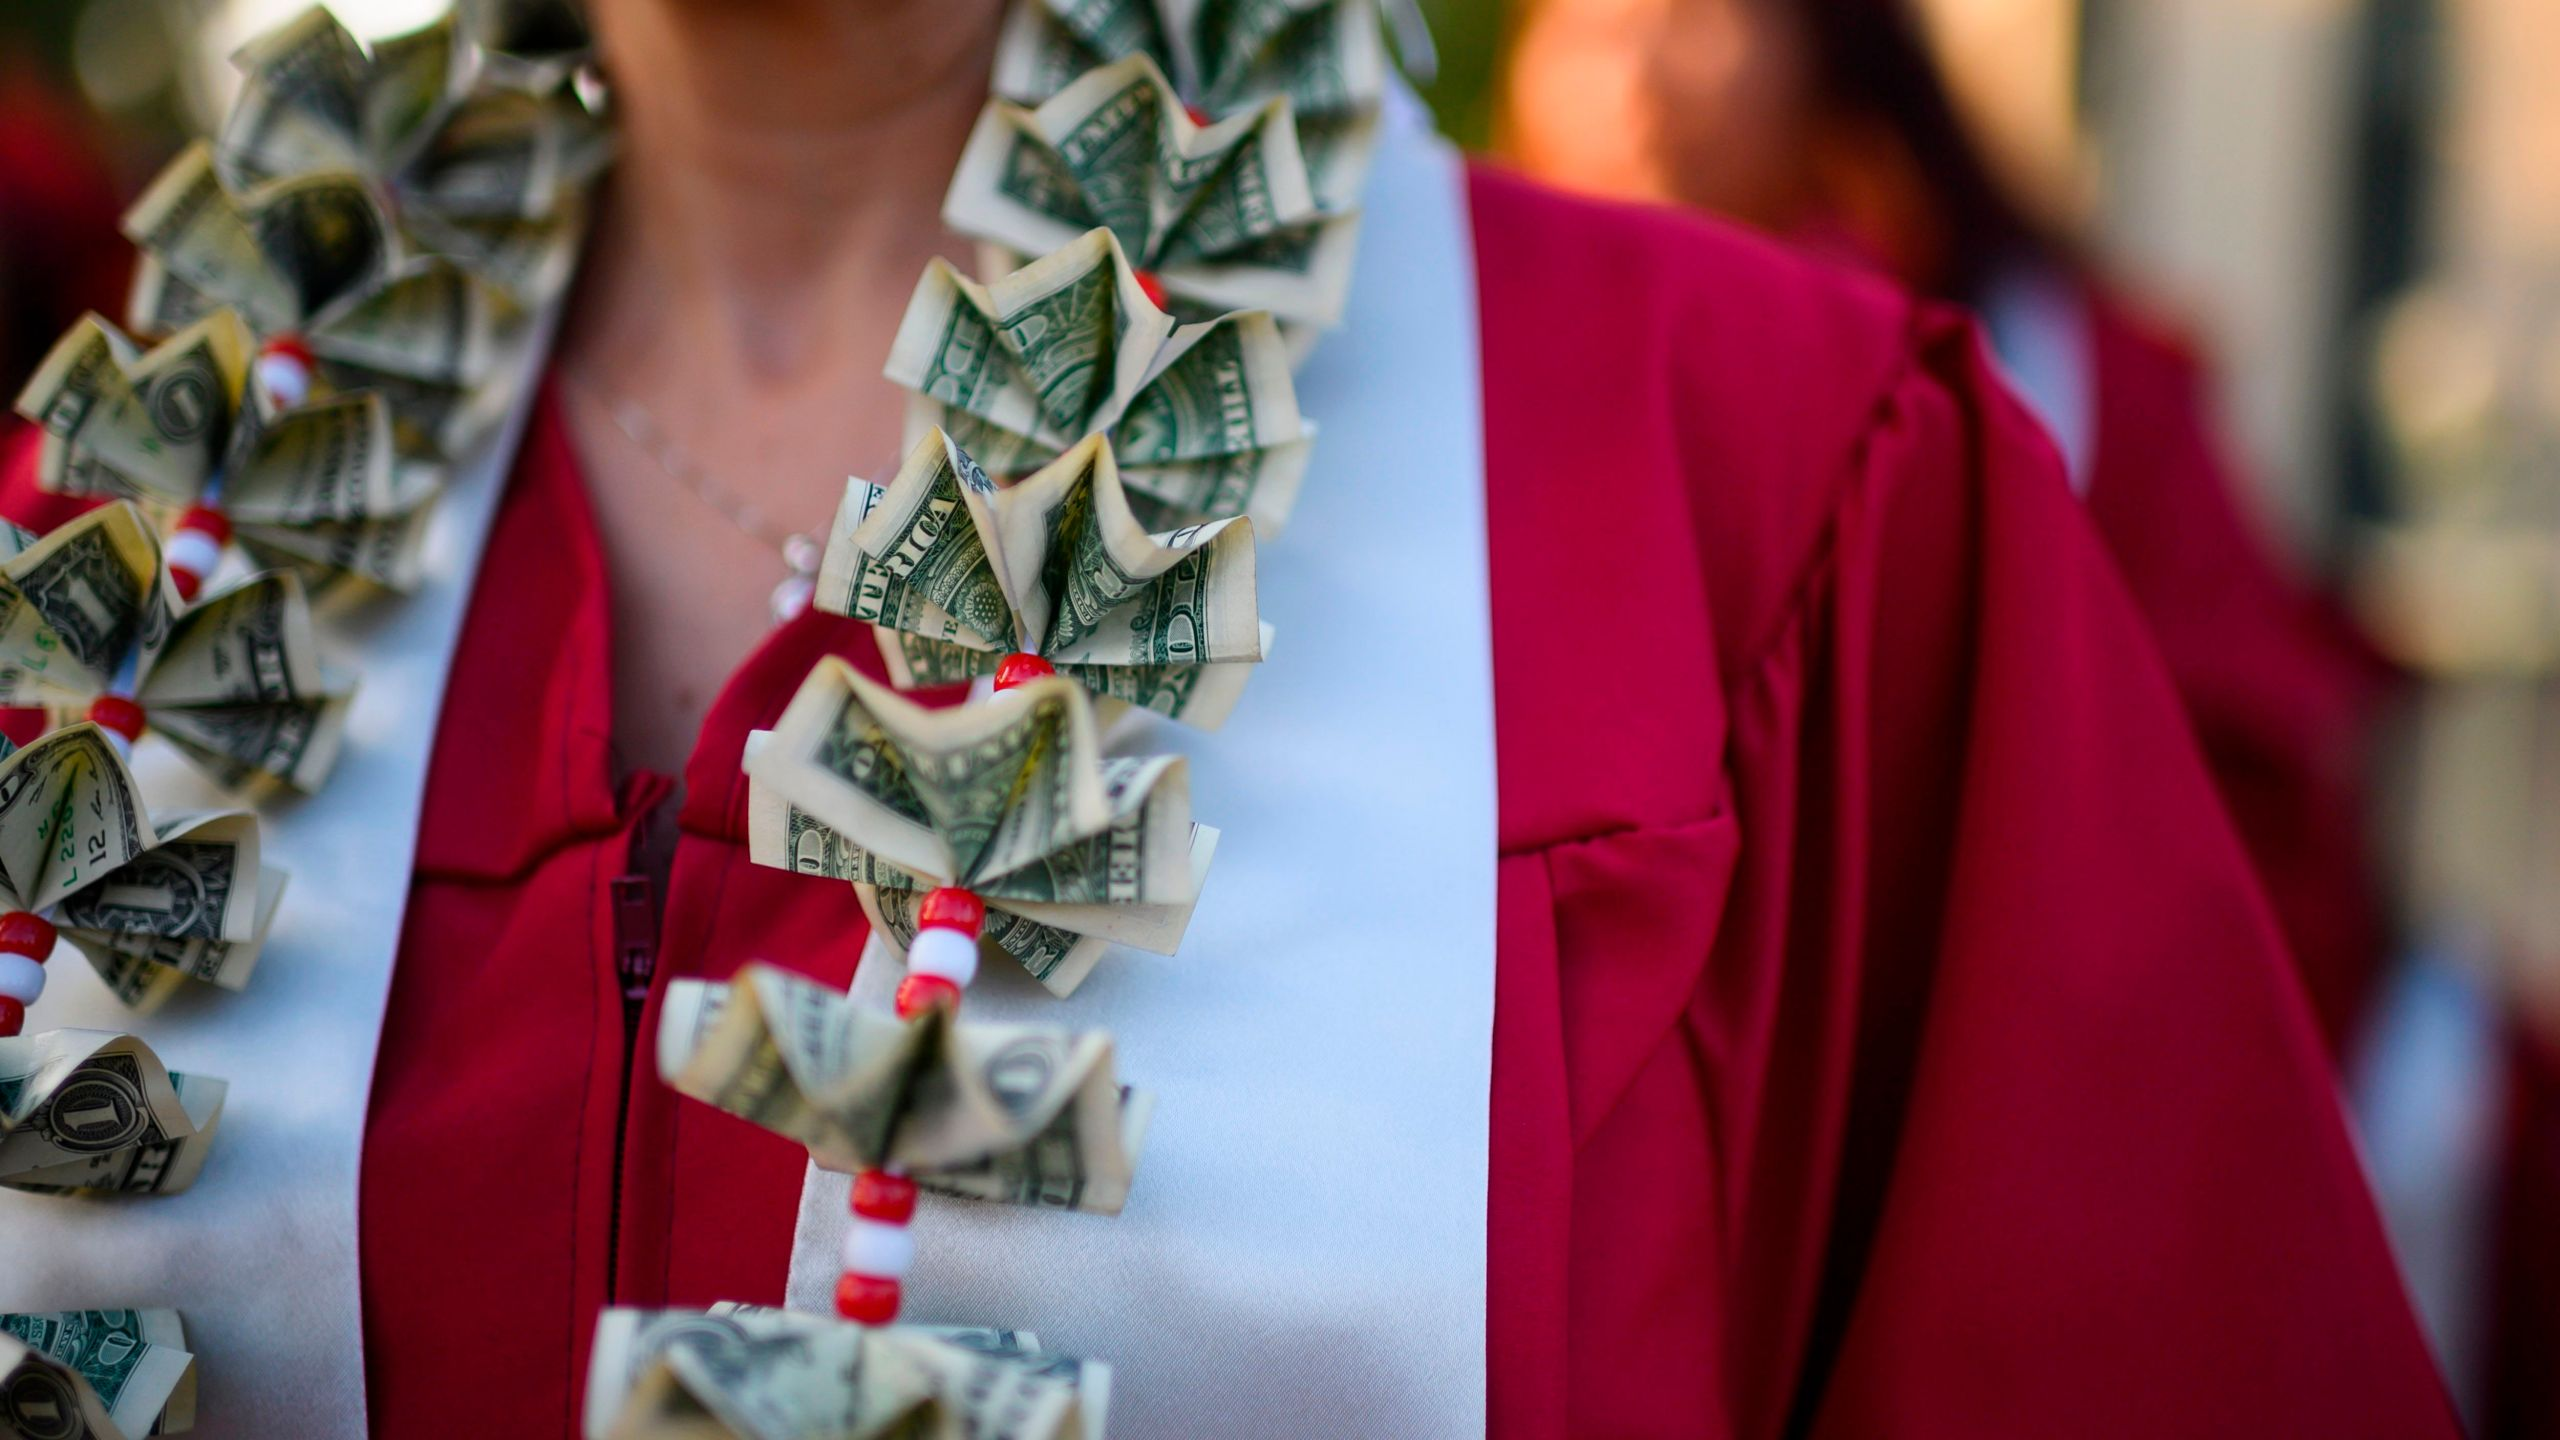 A graduate wears a lei made of U.S. dollar bills at the Pasadena City College graduation ceremony on June 14, 2019. (Credit: Robyn Beck / AFP / Getty Images)